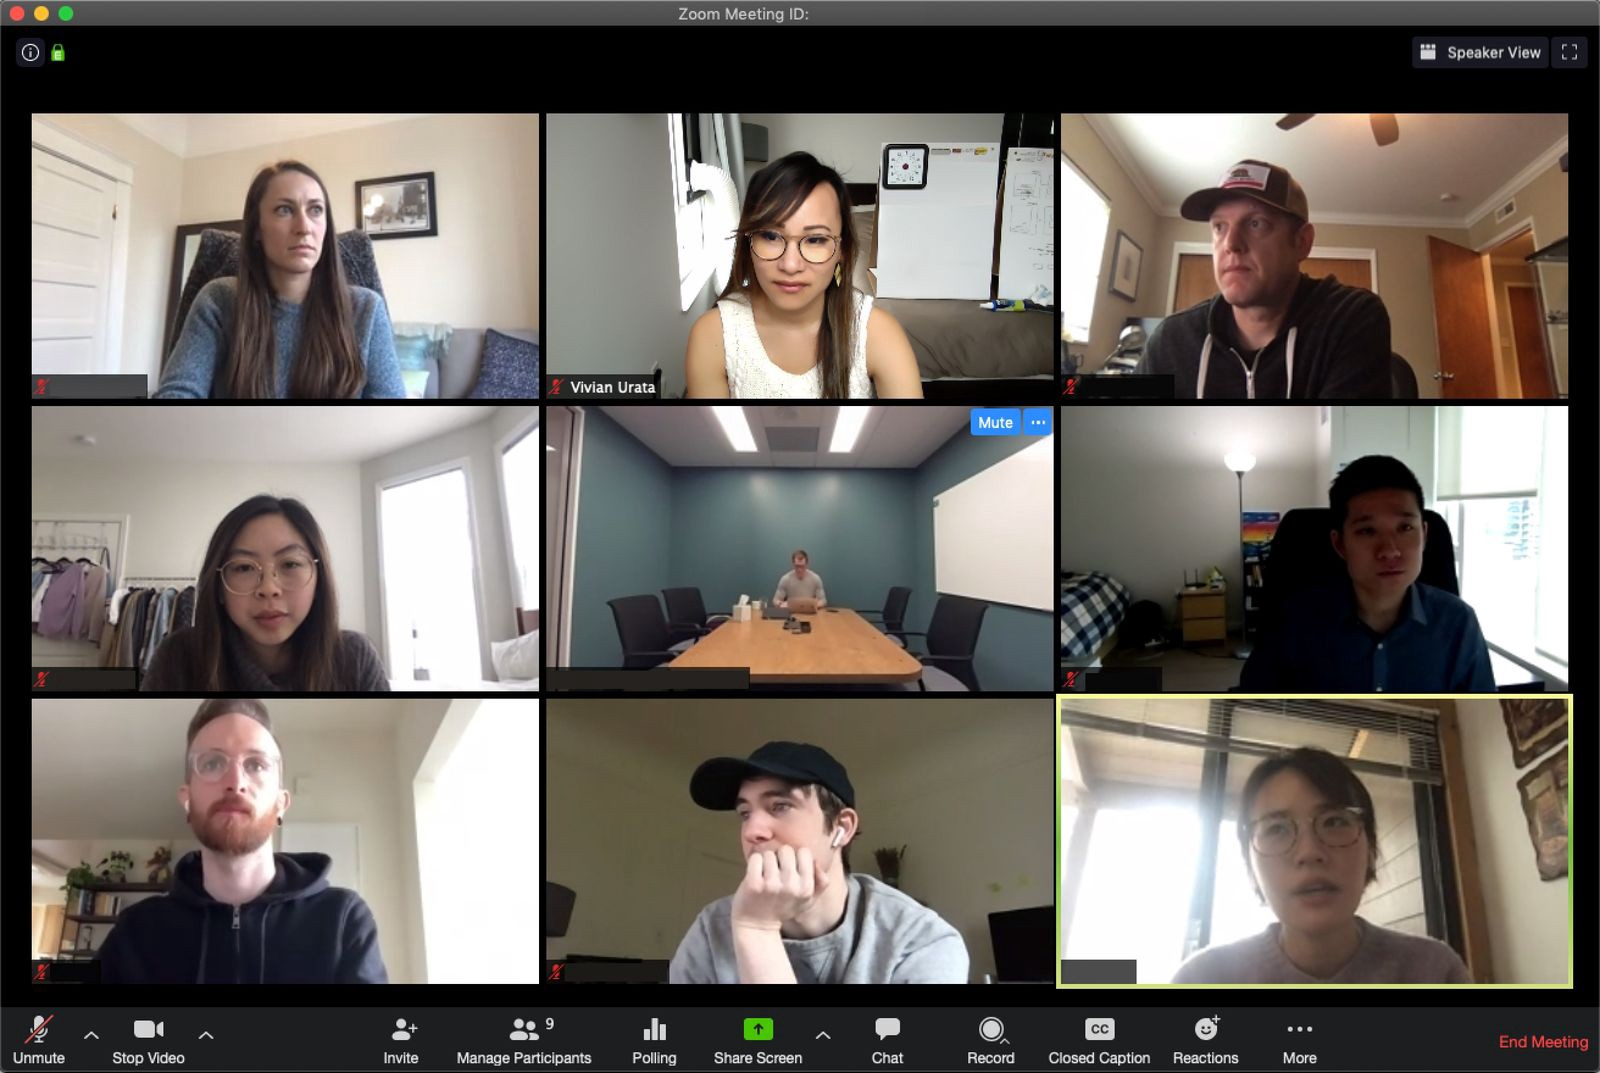 A group of people on a video call